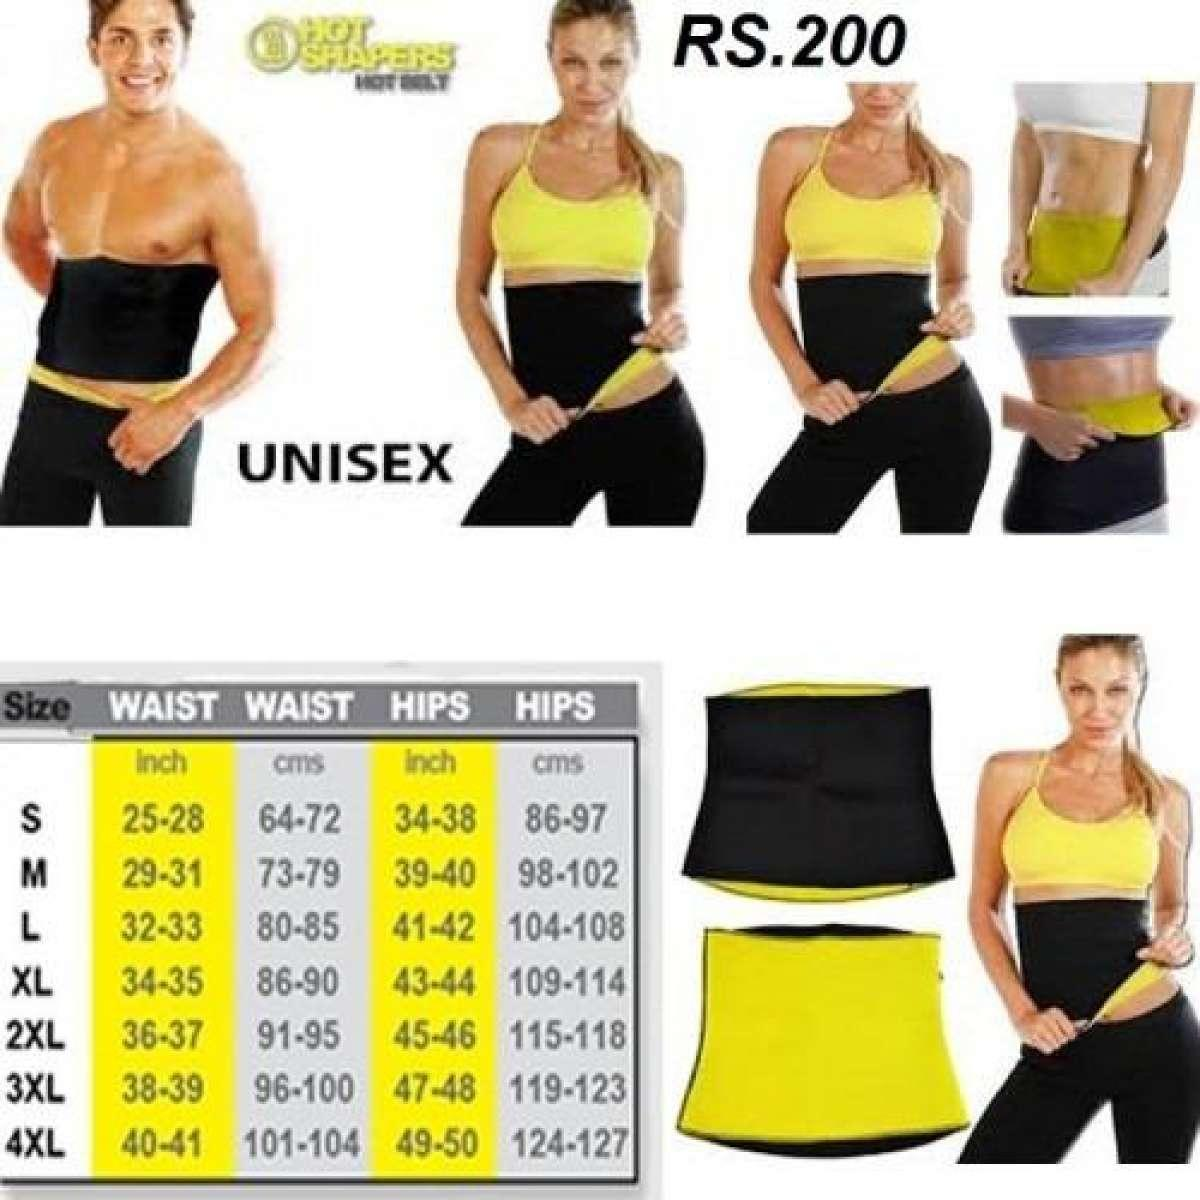 e7d6cdd363 Hot Shapers Philippines  Hot Shapers price list - Slimming Belt ...